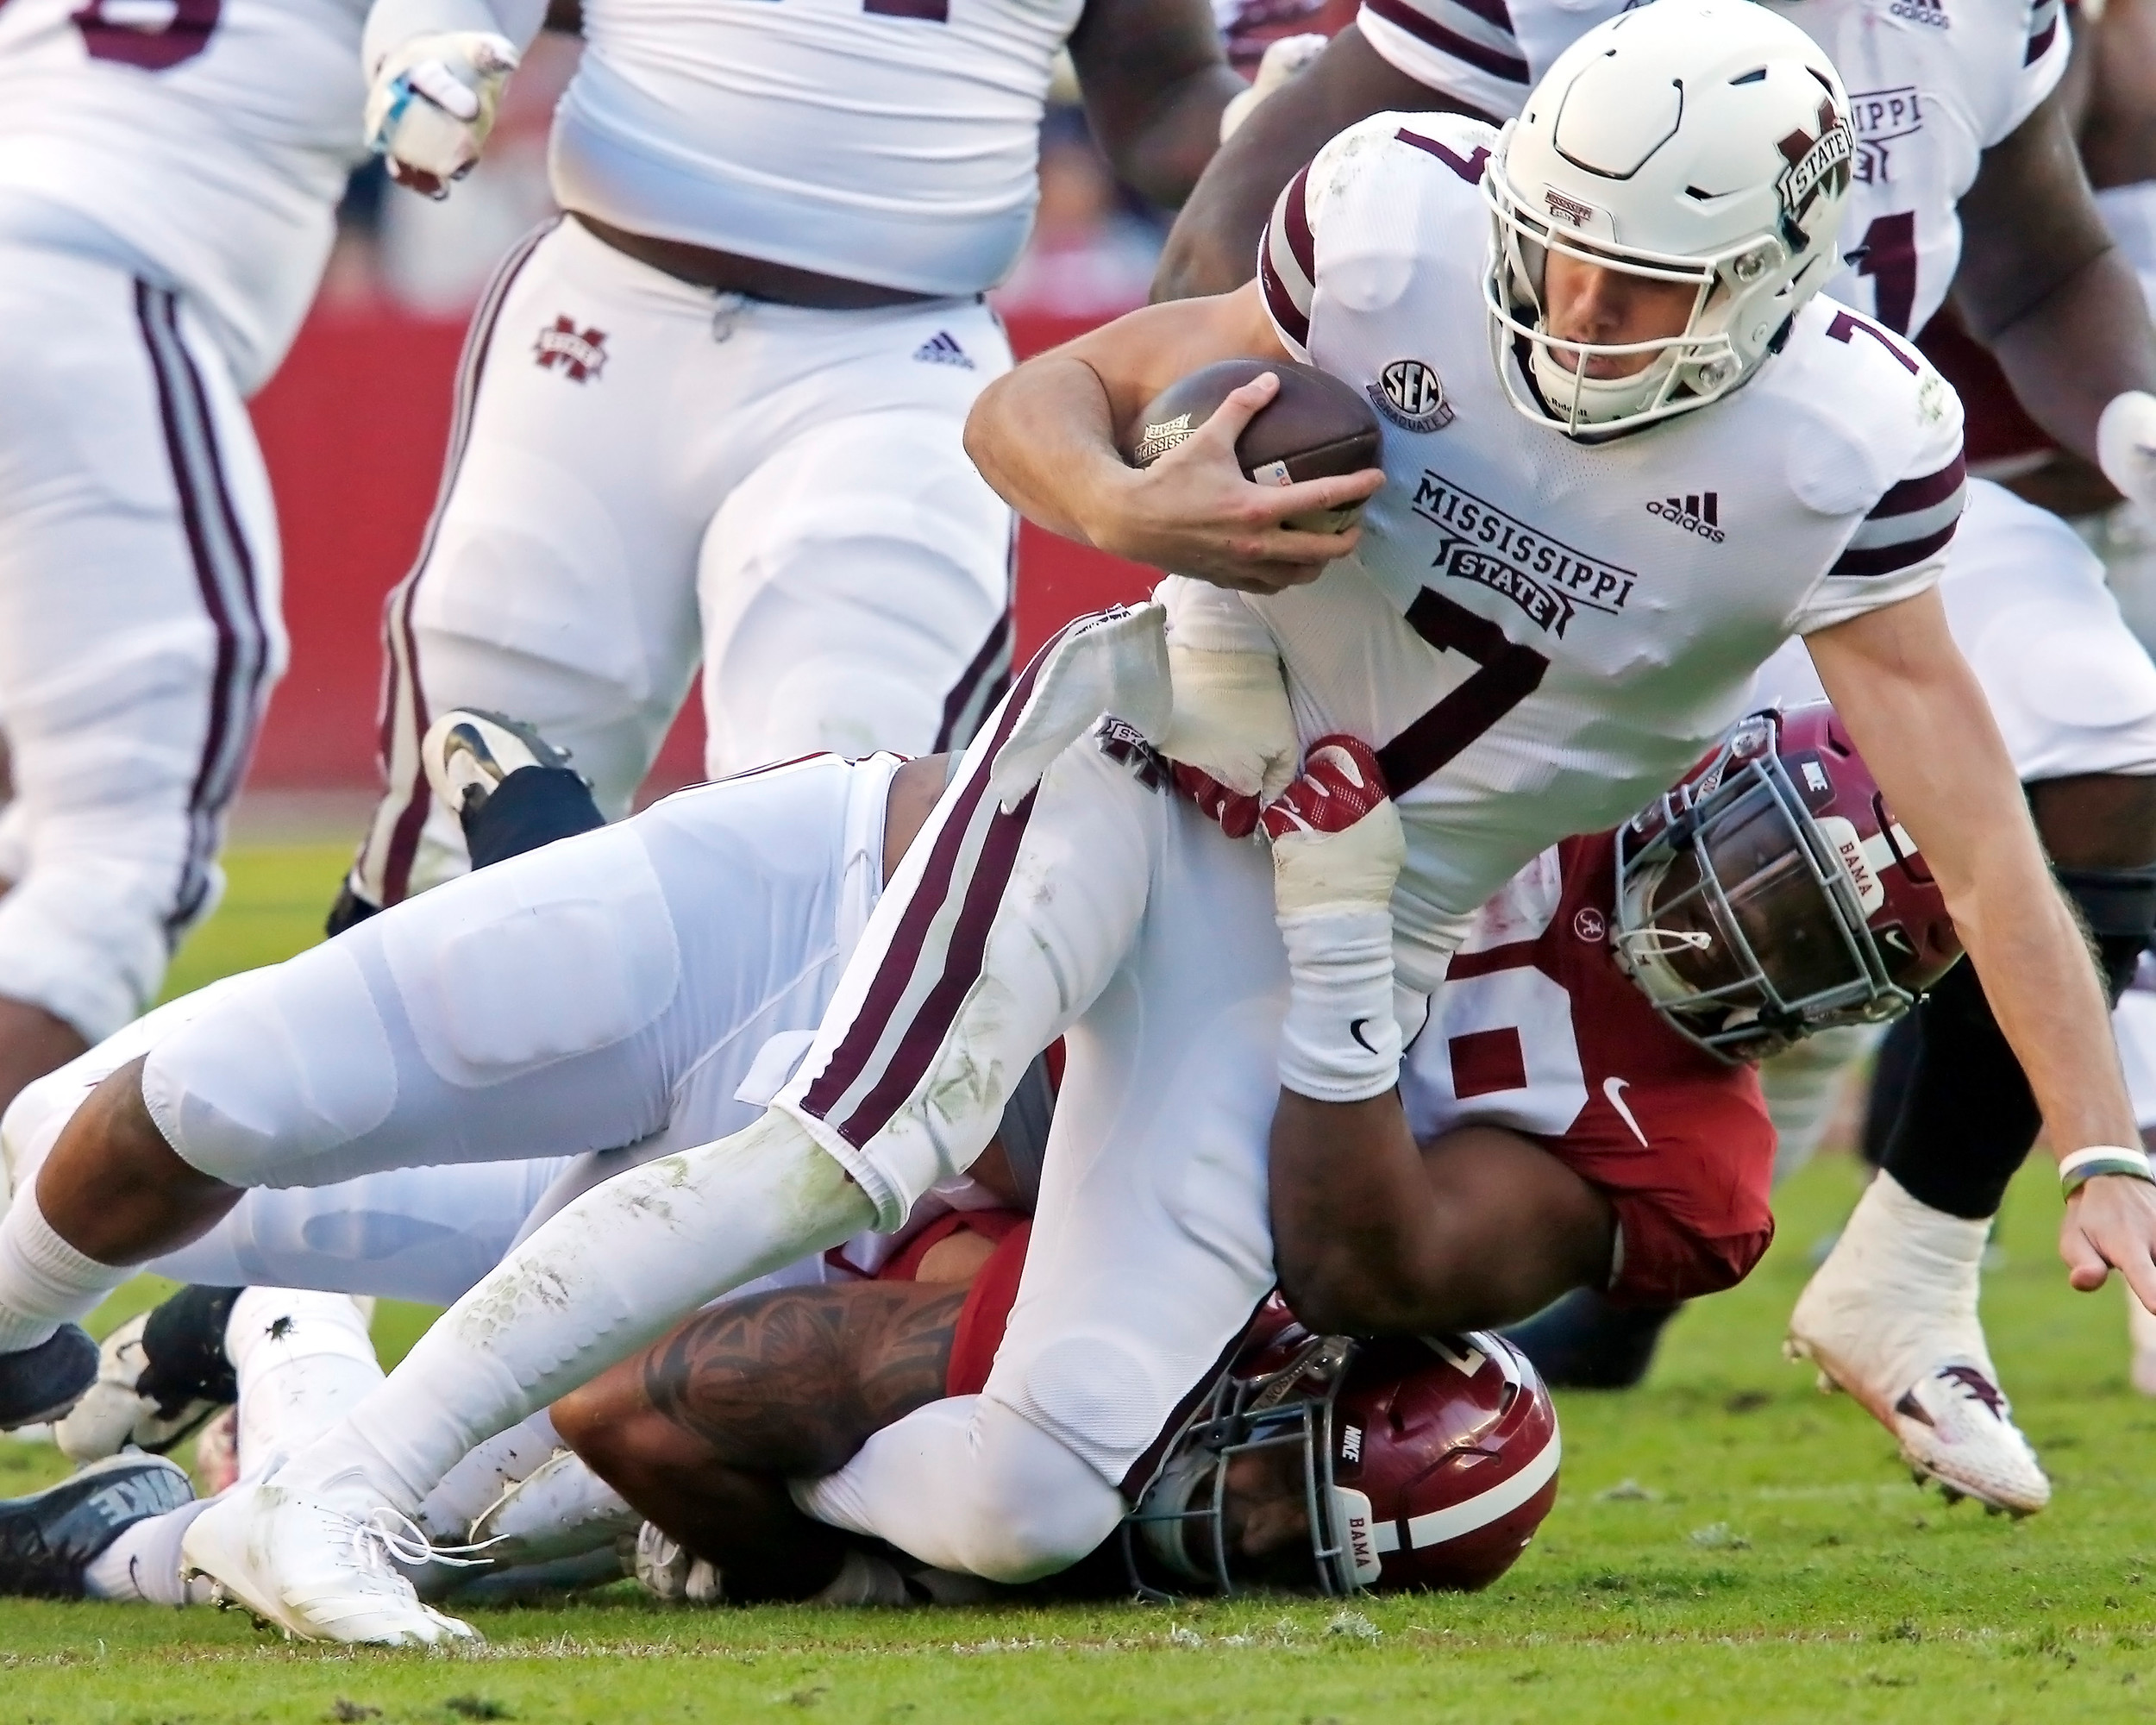 Alabama Crimson Tide defensive lineman Raekwon Davis (99) sacks Mississippi State Bulldogs quarterback Nick Fitzgerald (7) during the game between Mississippi State and the University of Alabama at Bryant-Denny Stadium in Tuscaloosa, Al. Credit: Jason Clark / Daily Mountain Eagle